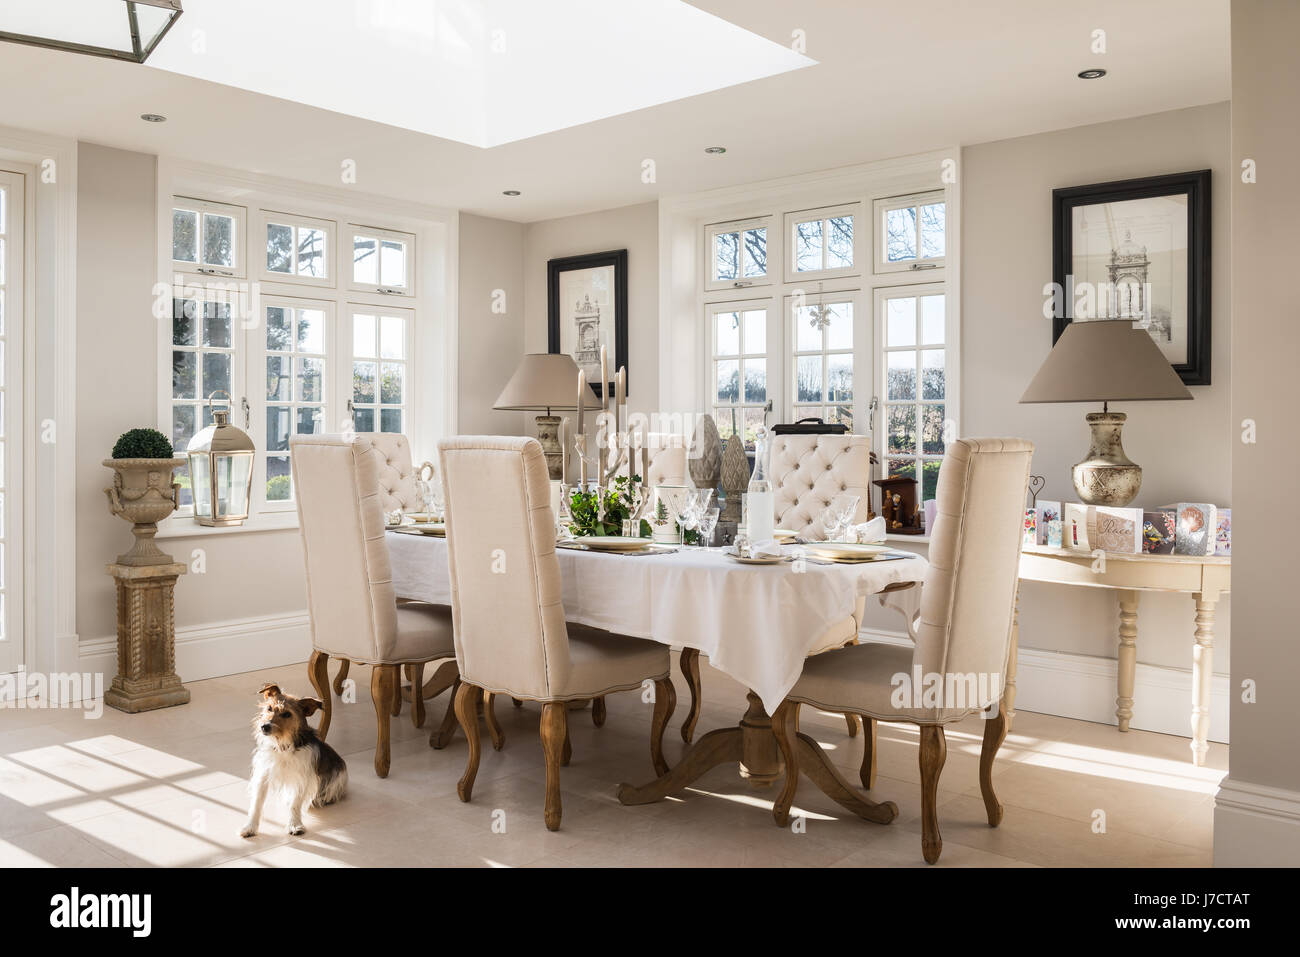 Dining table with buttoned chairs under skylight in orangery - Stock Image